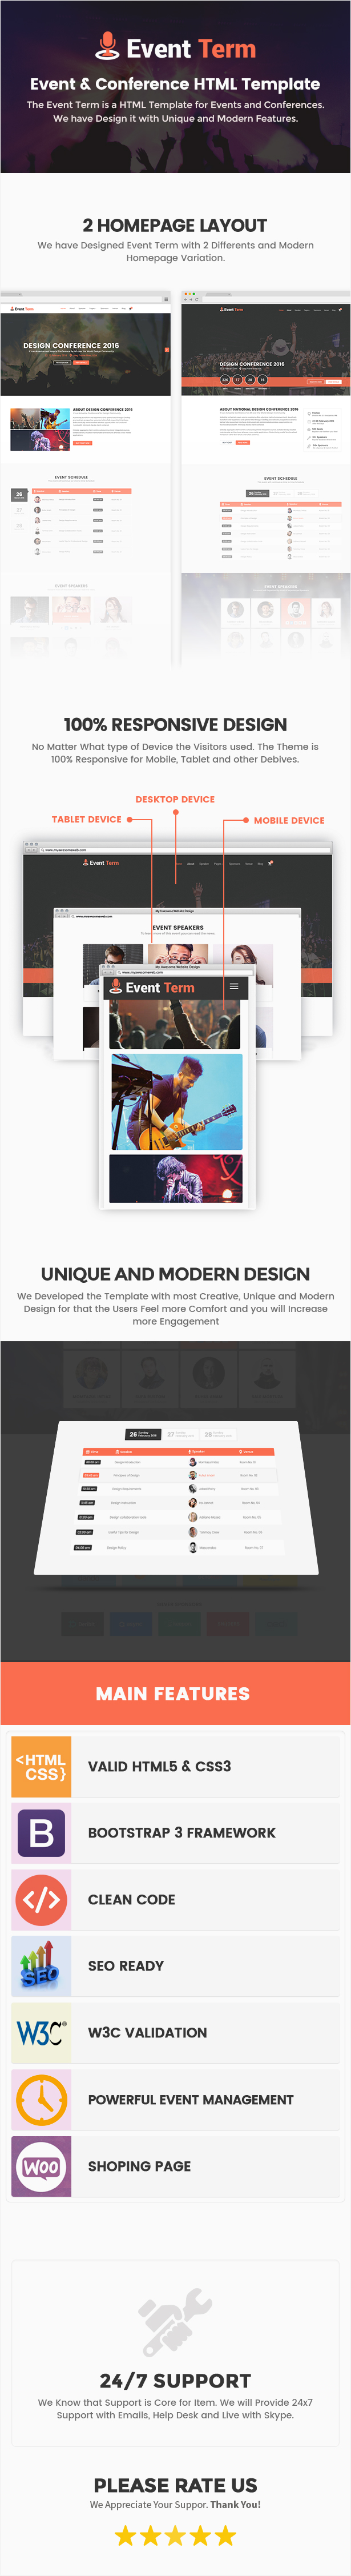 Event Term - Event & Conference HTML Template